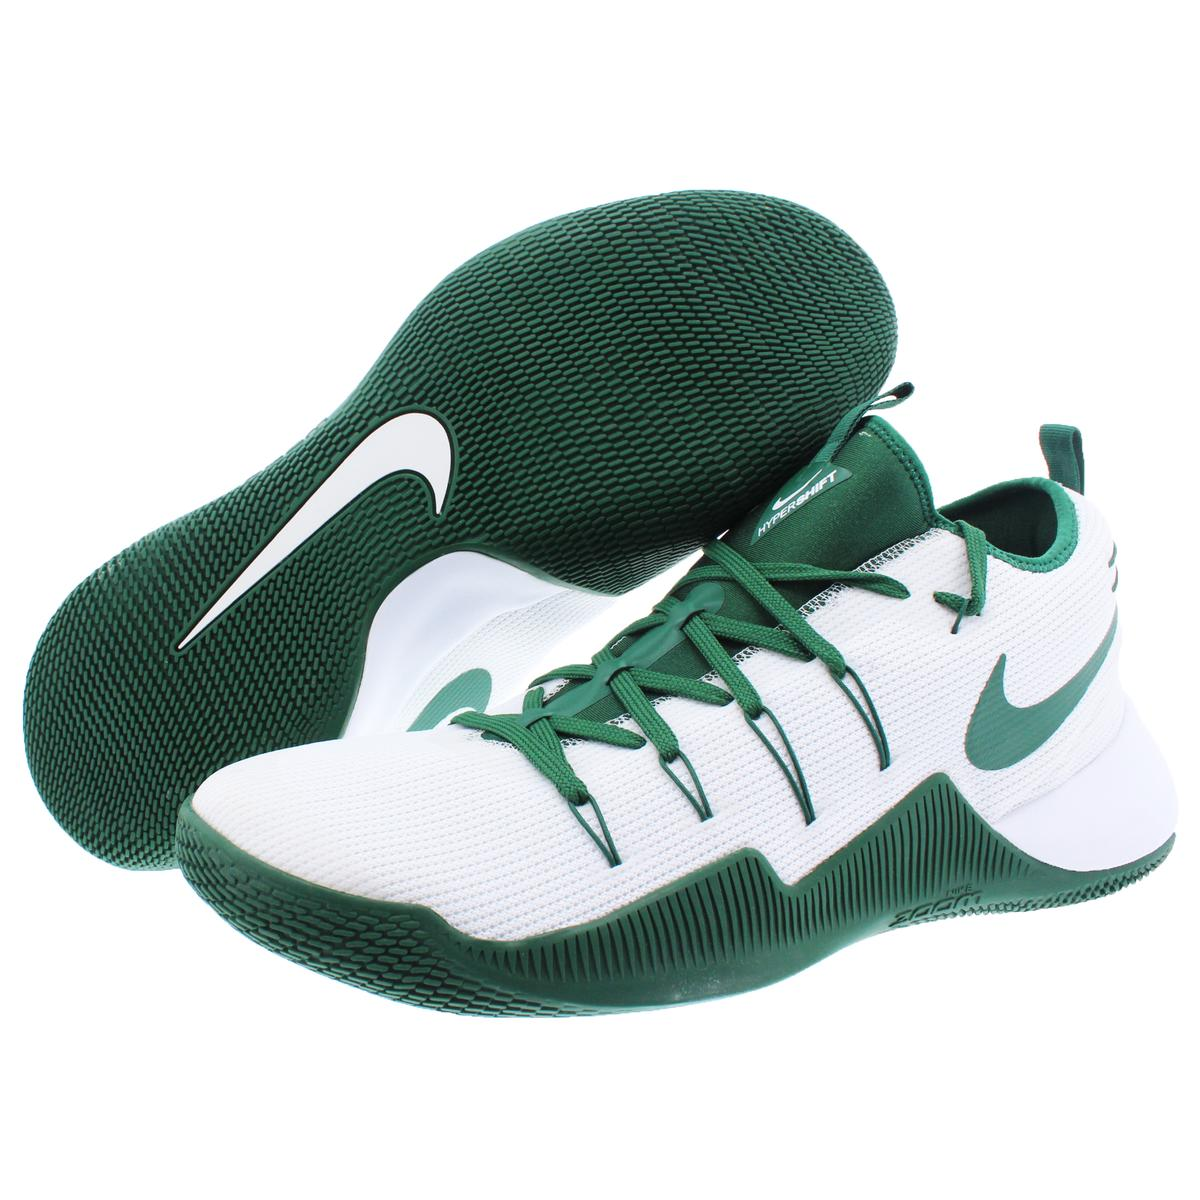 a3e5c648b91c Nike Hypershift TB Promo Men s Mesh Lace-Up Basketball Shoes